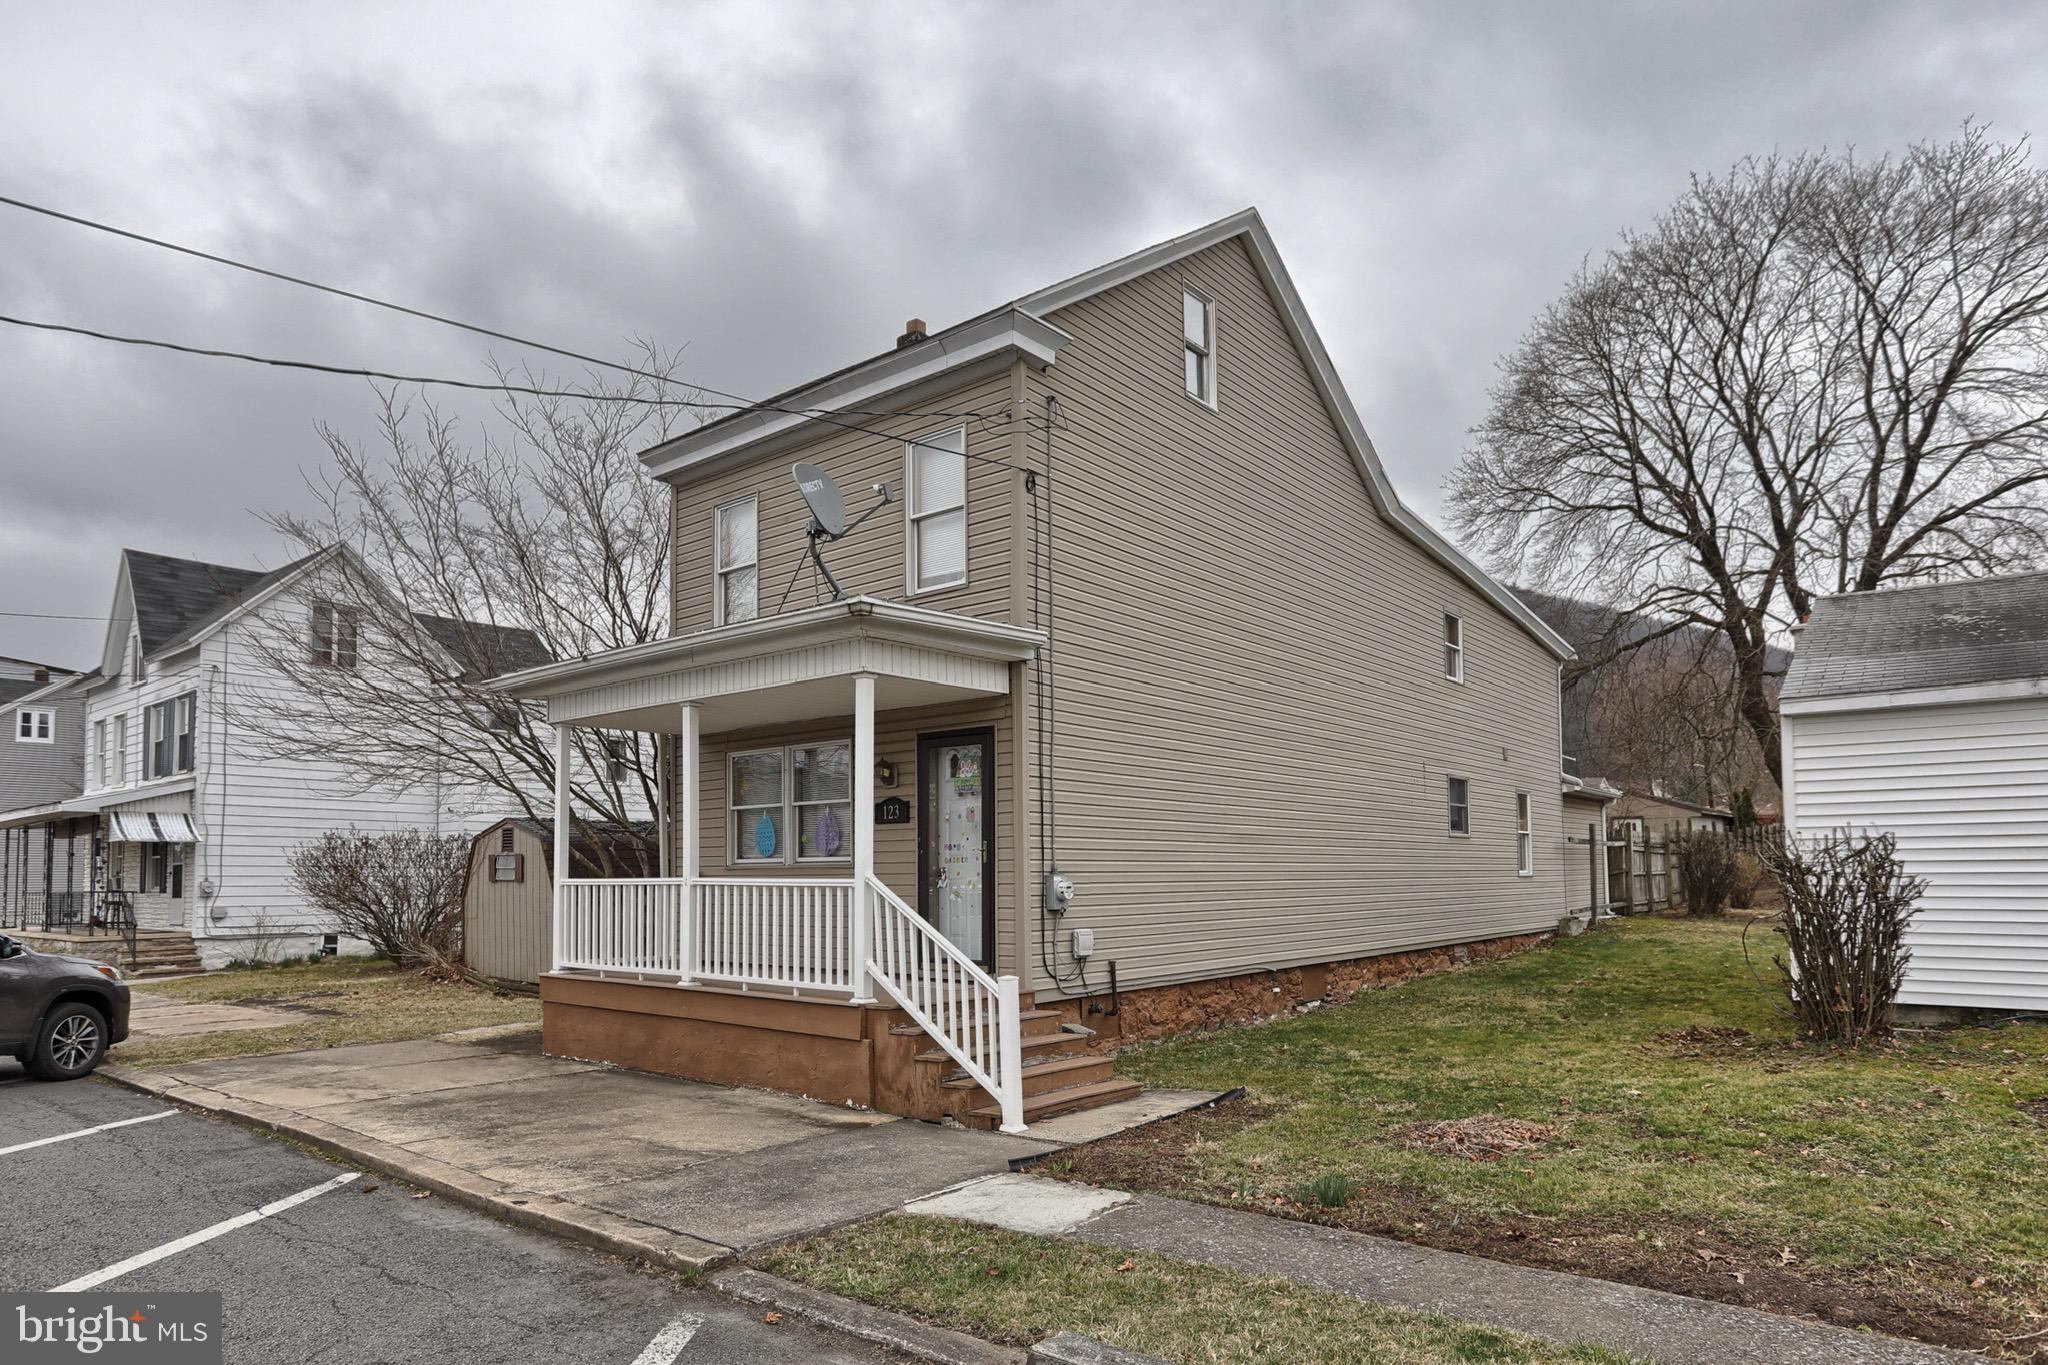 123 W BIDDLE STREET, GORDON, PA 17936